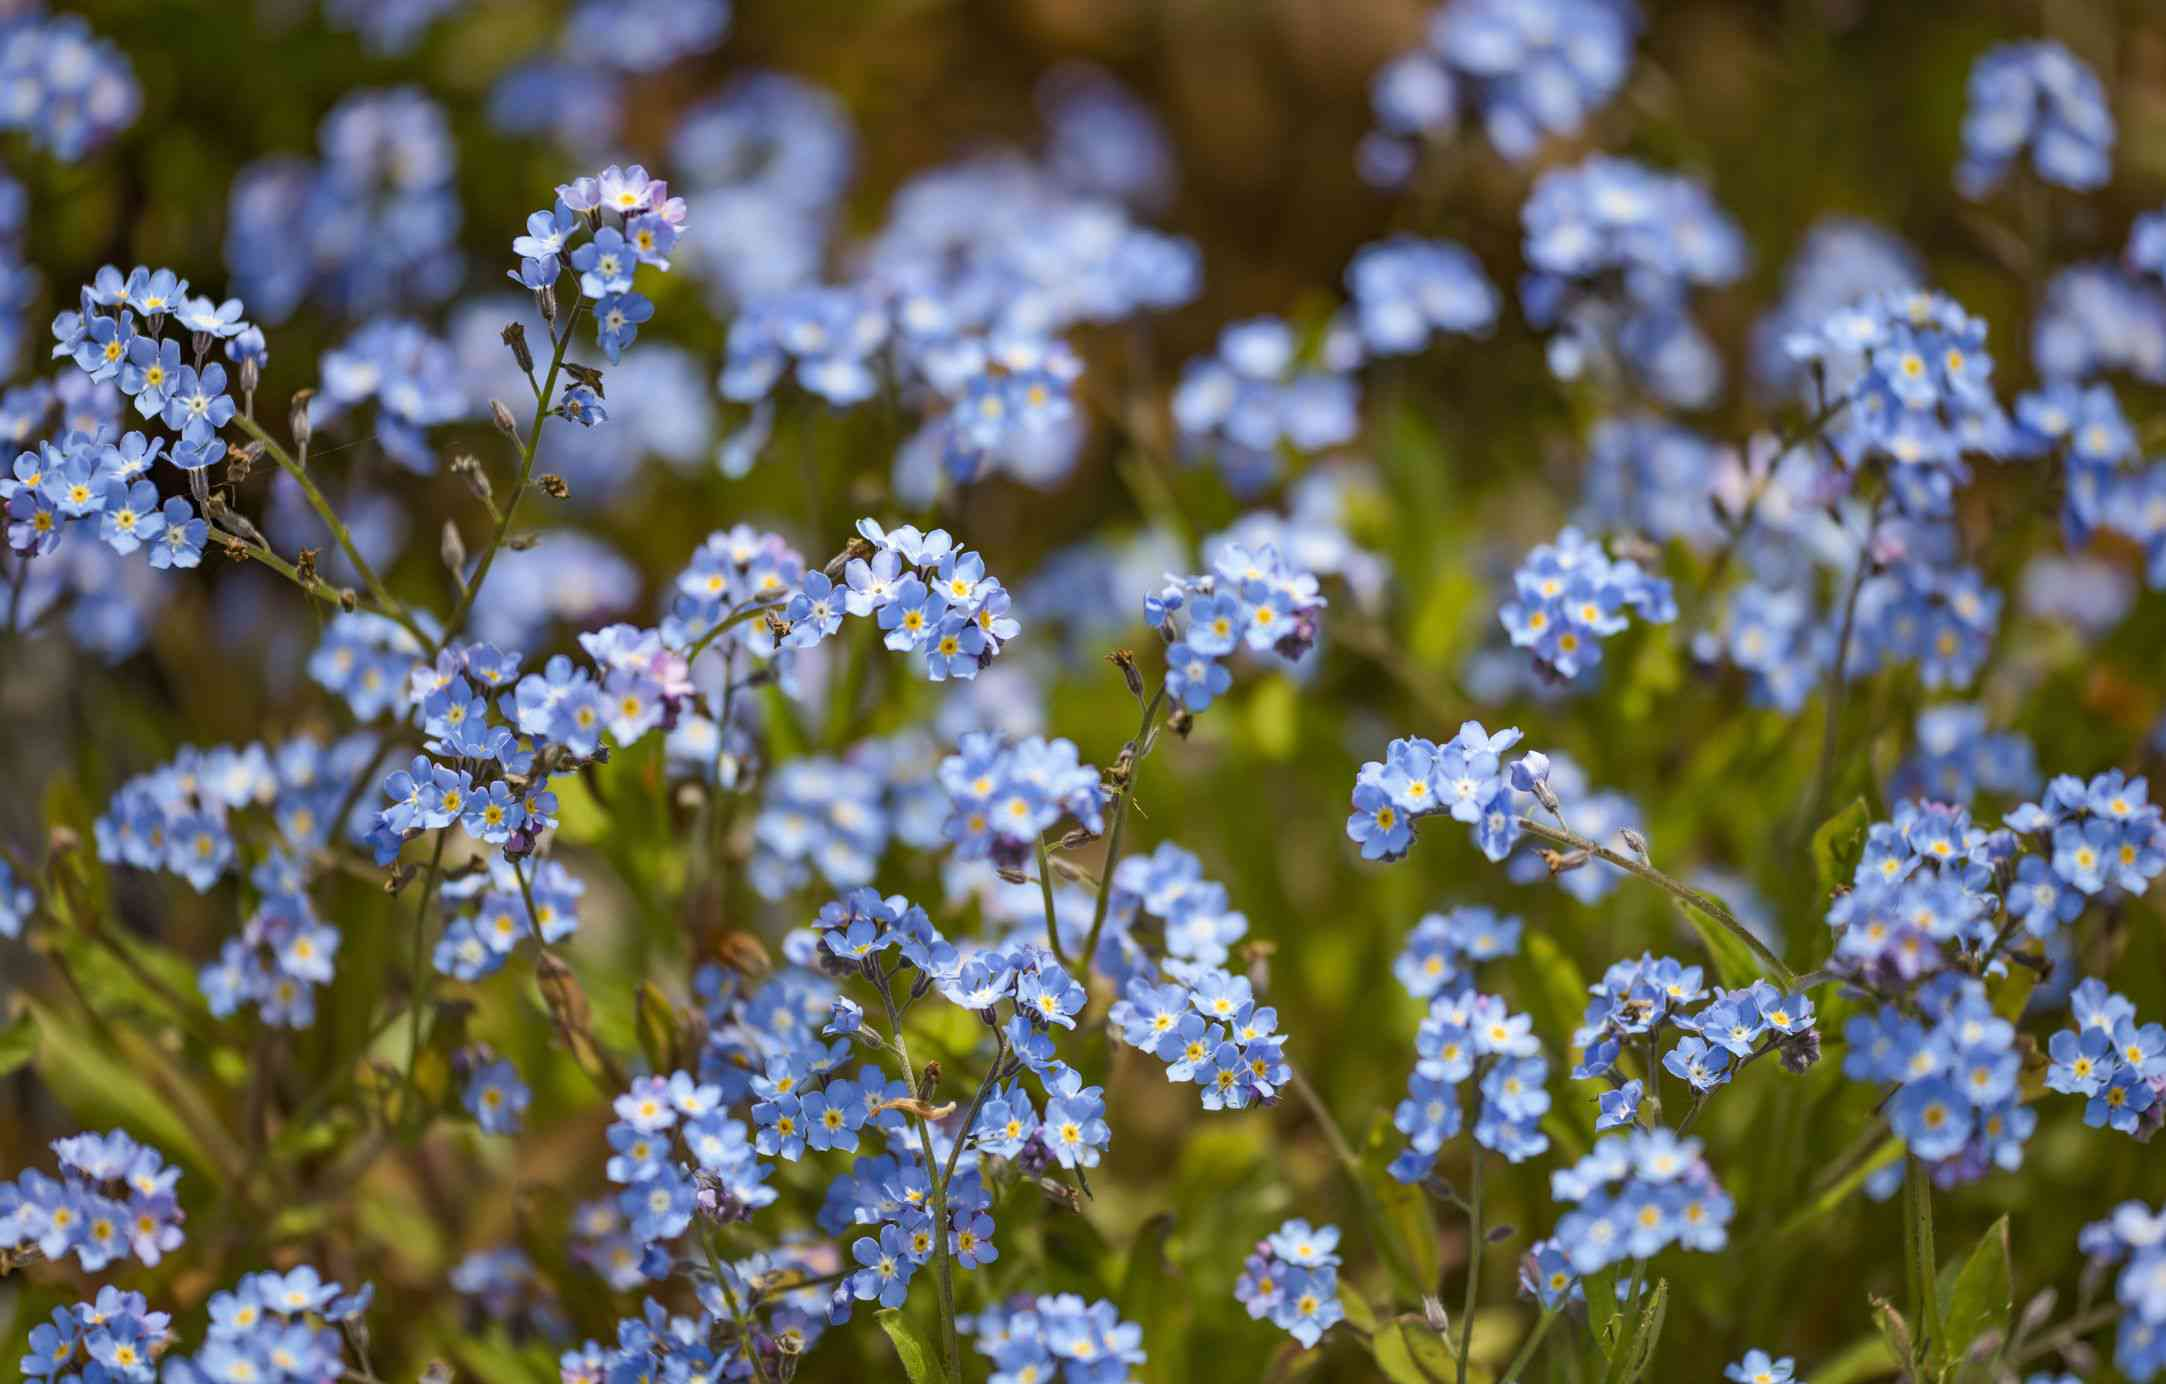 forget-me-nots in bloom